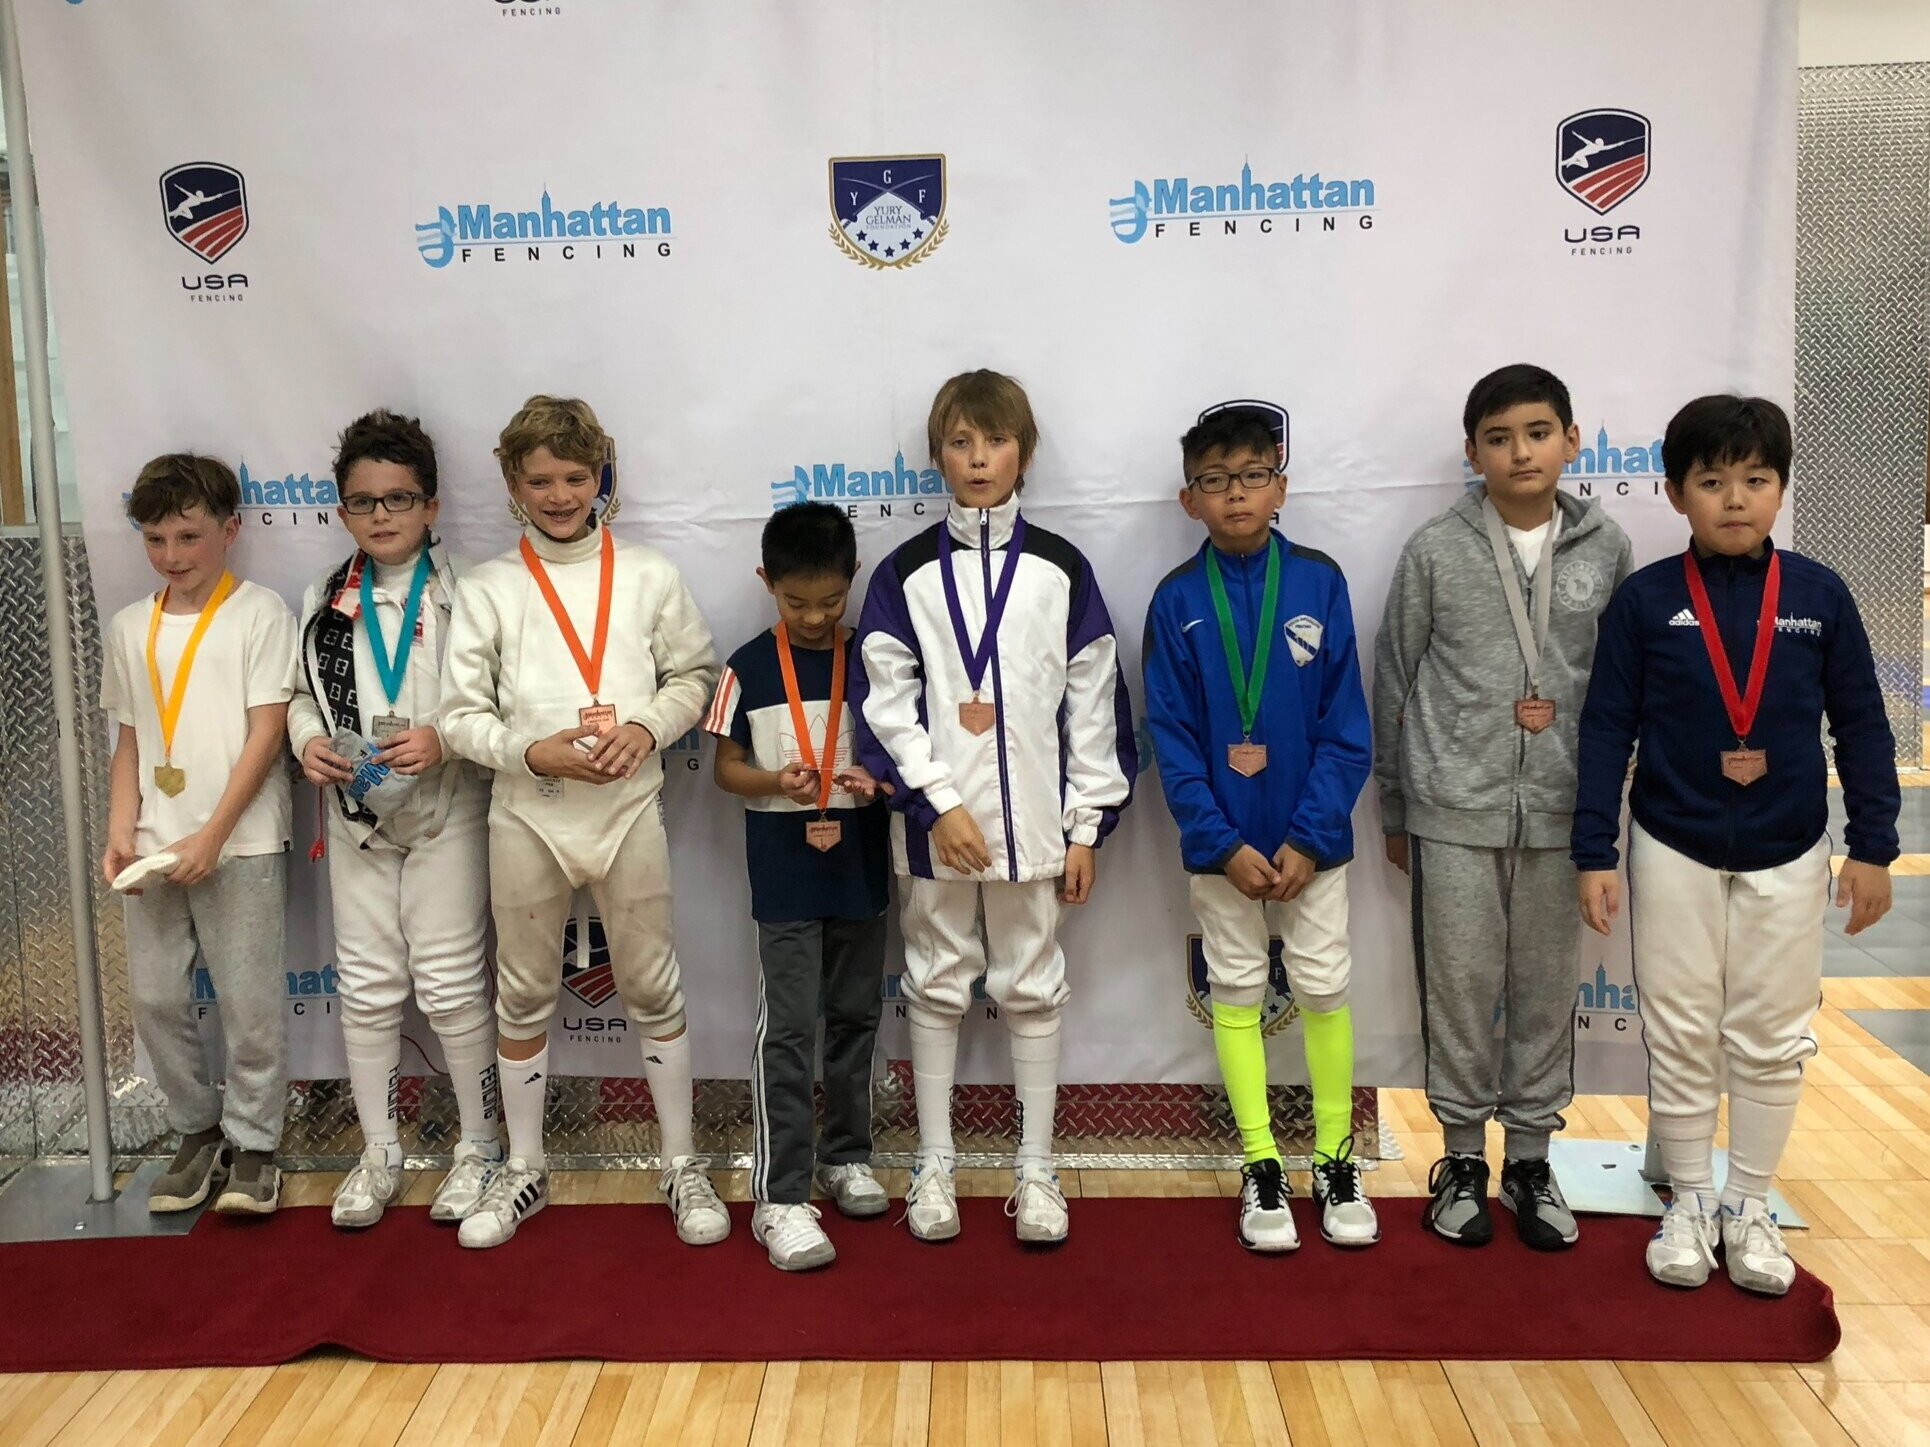 MFC Liberty Cup Y10 mens foil  Ethan Mo 6th place